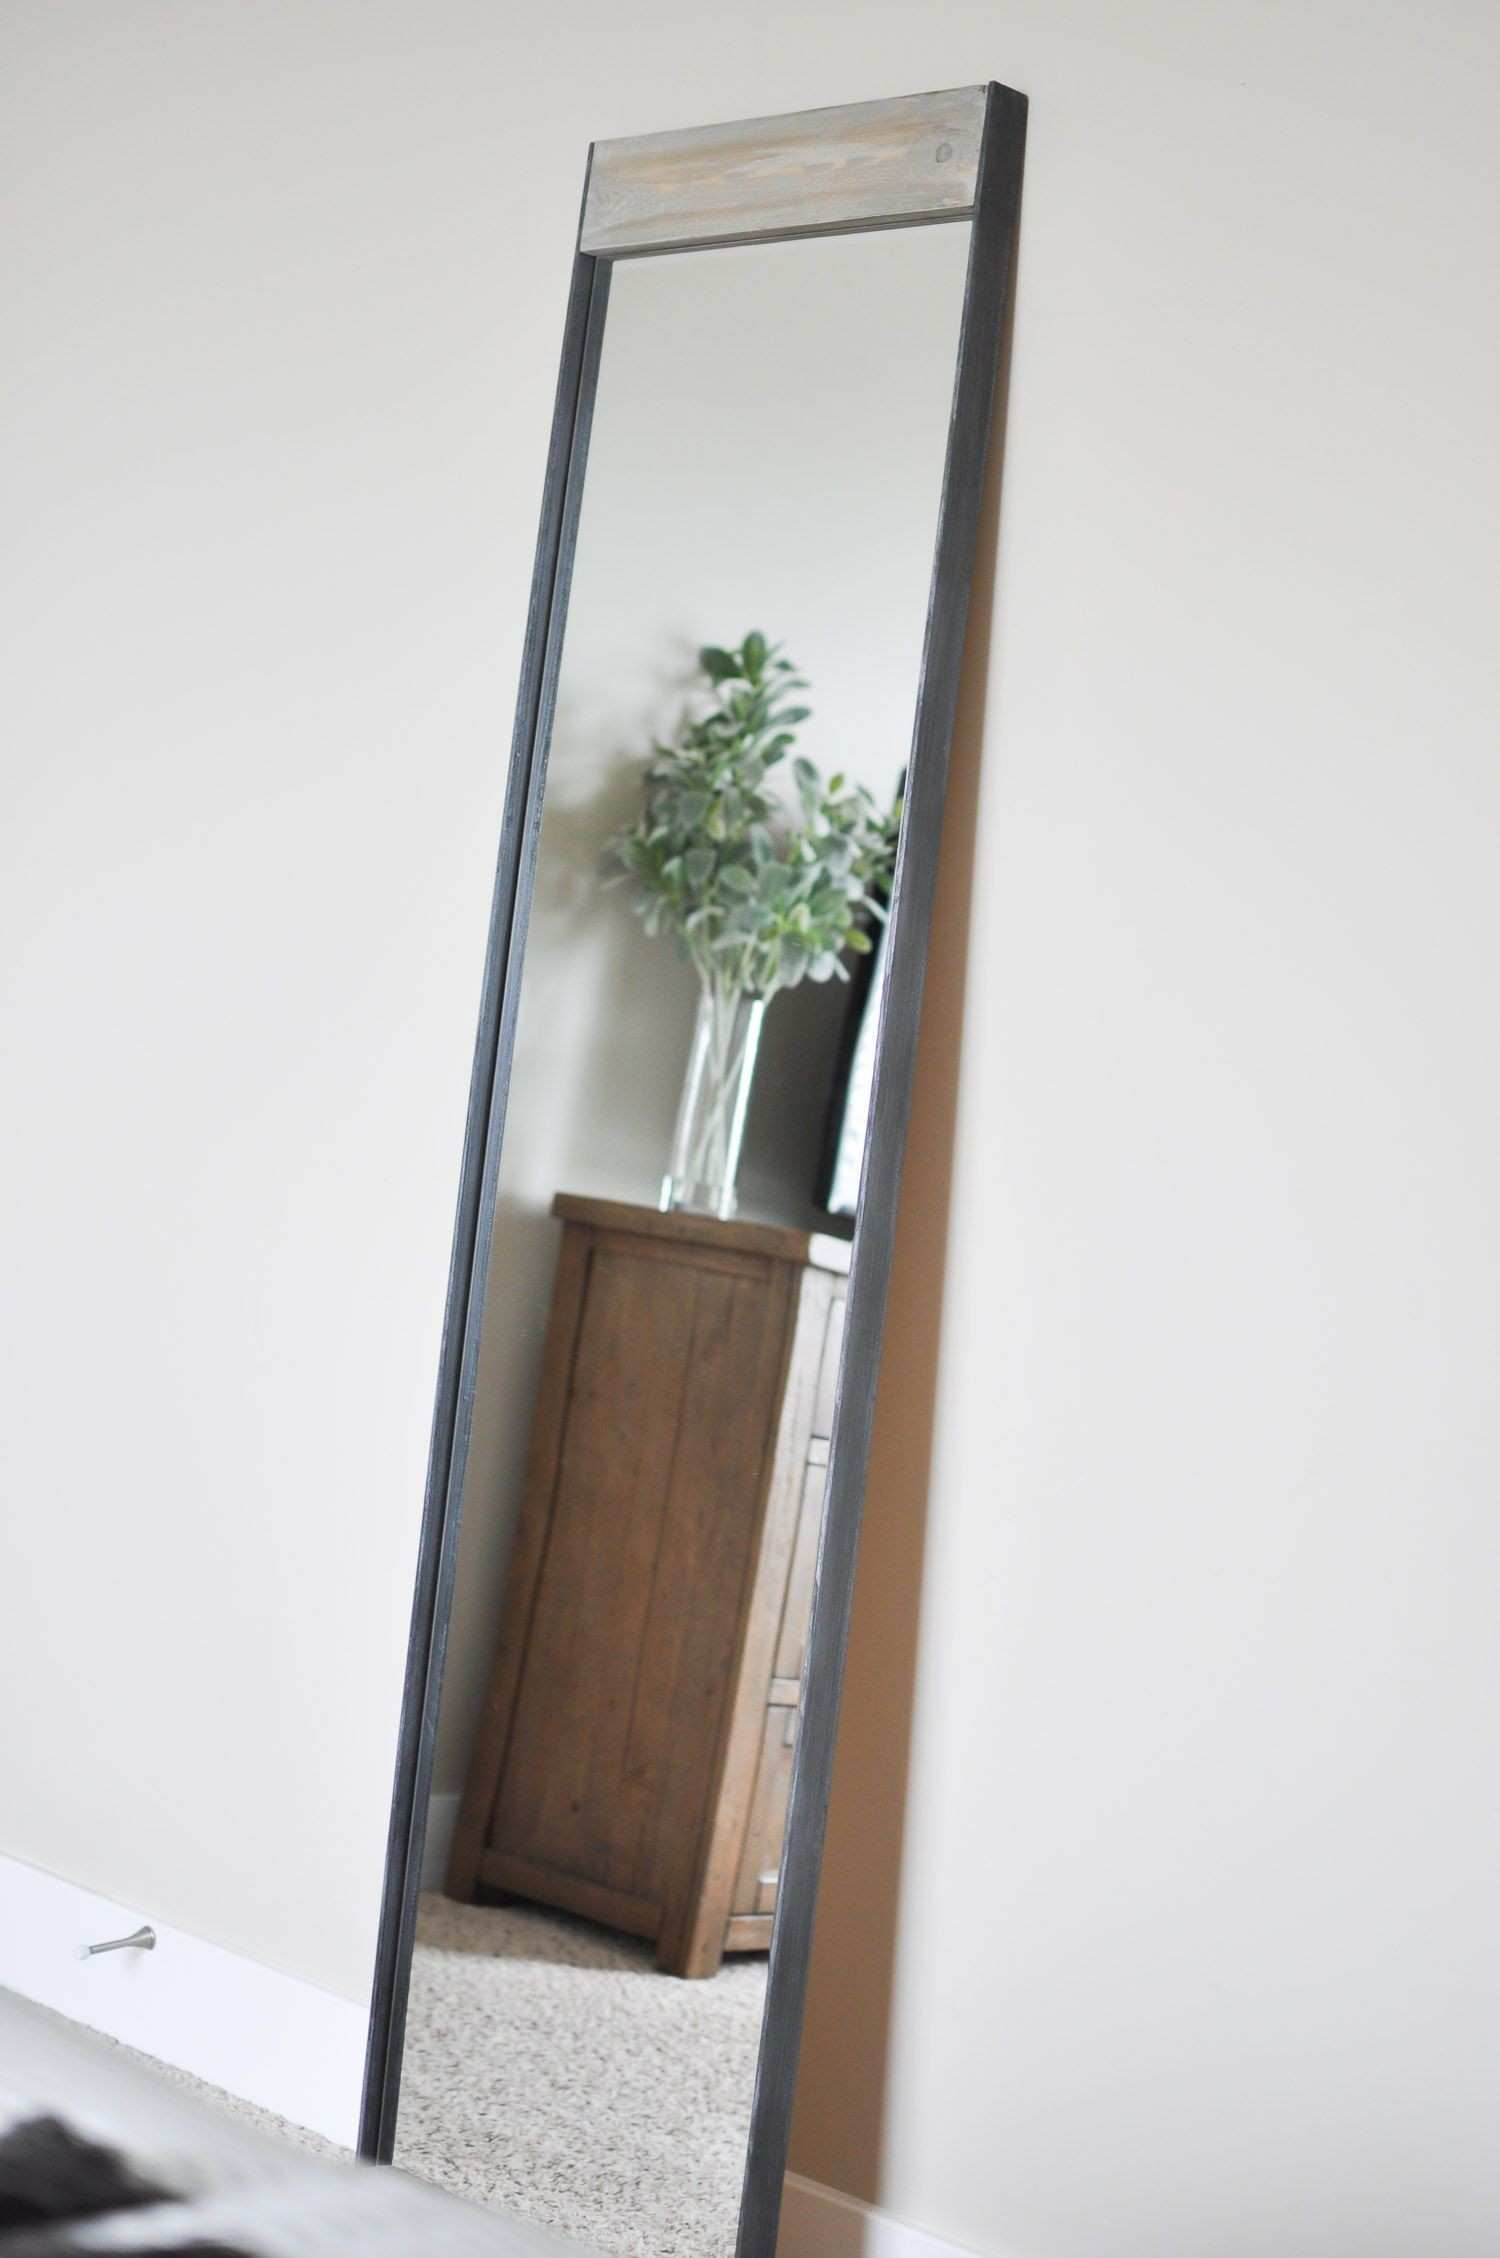 Cliveden Wood Metal Wall Mirror Brown 32 H X 21 W 1 5 D 7f